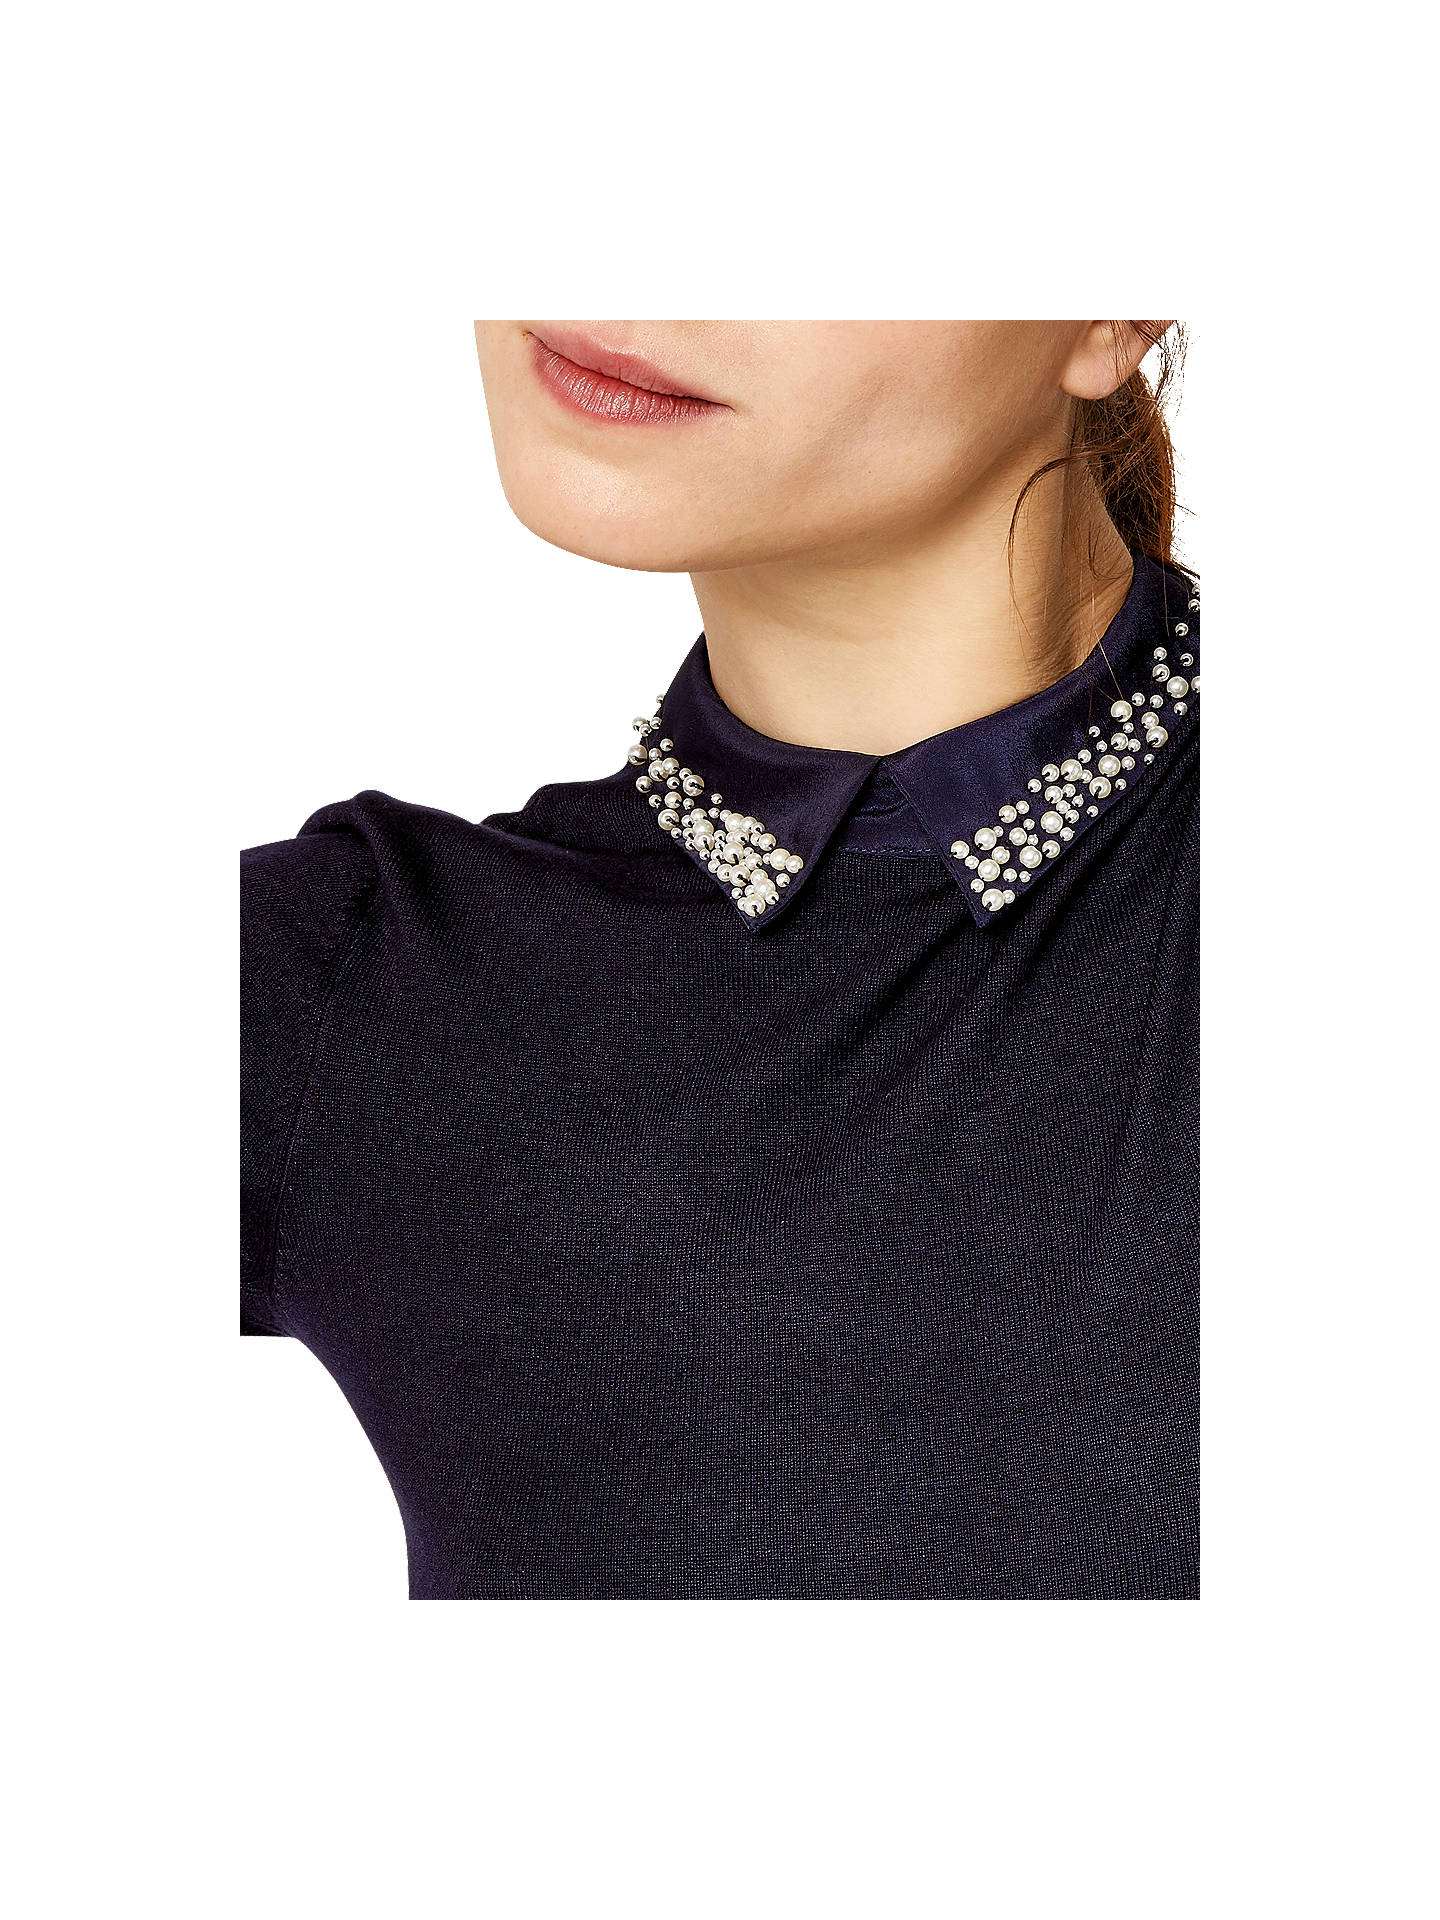 BuyWarehouse Pearl Embellished Collar Dress, Navy, 6 Online at johnlewis.com